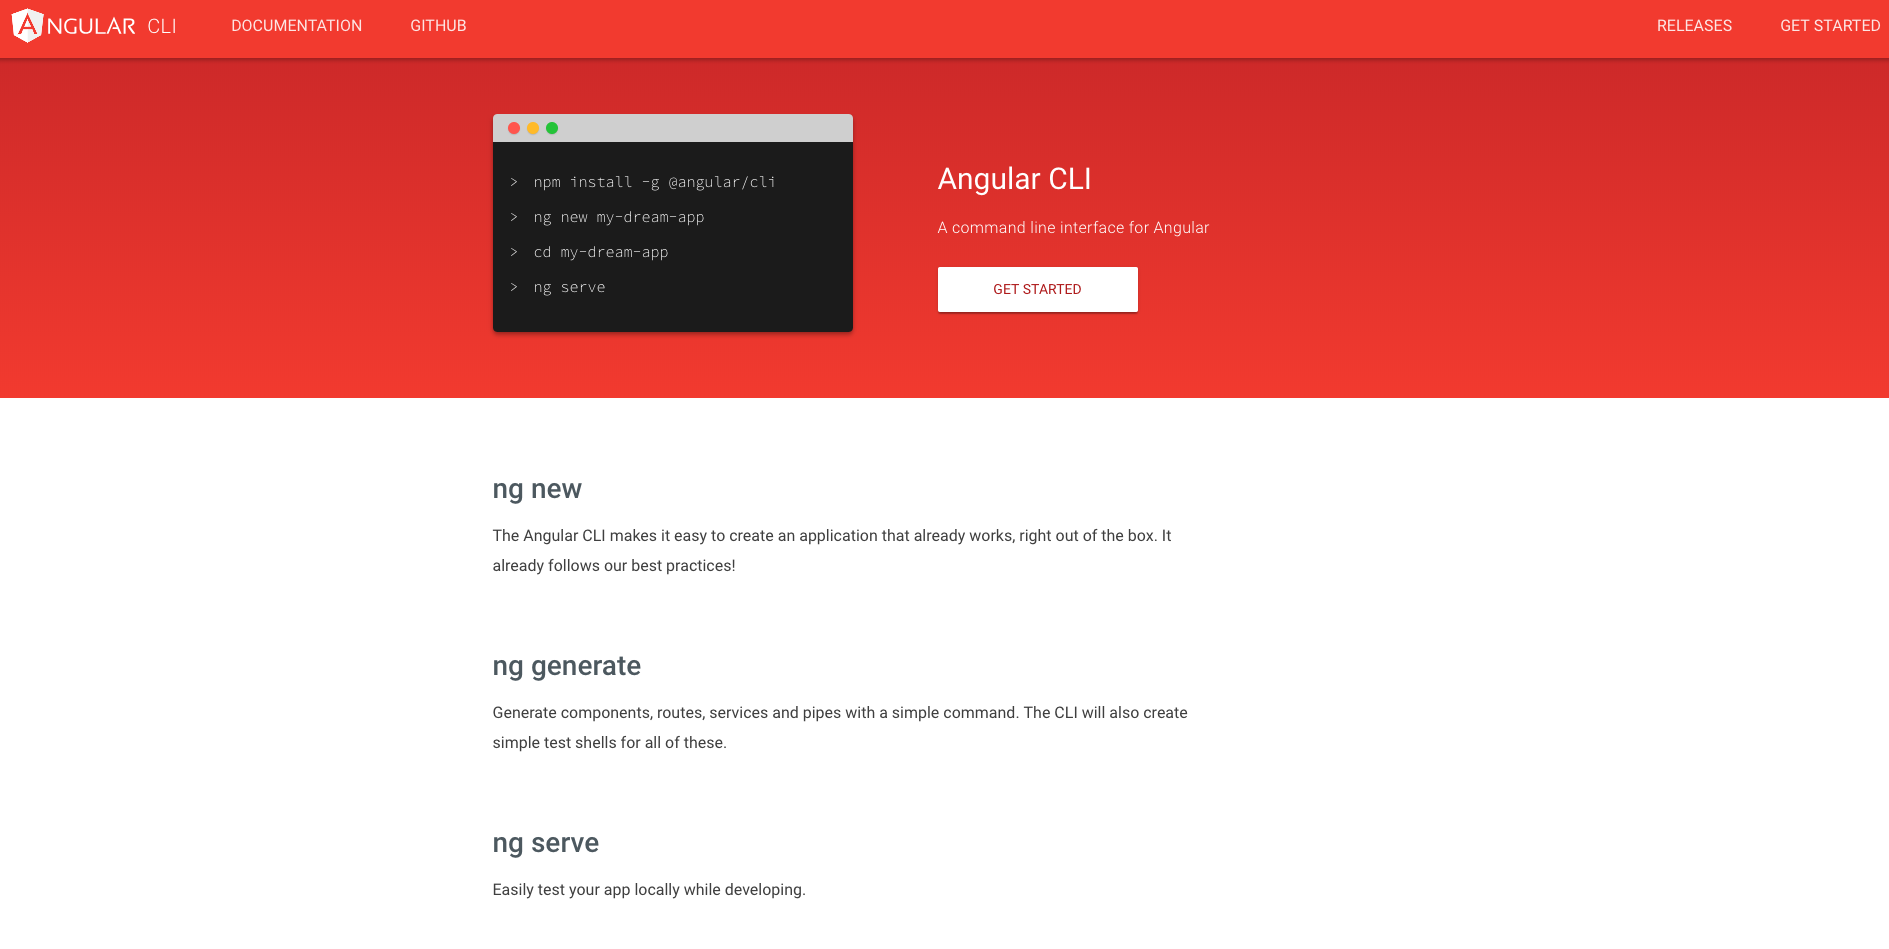 Starting an Angular App with Angular CLI in a couple of minutes